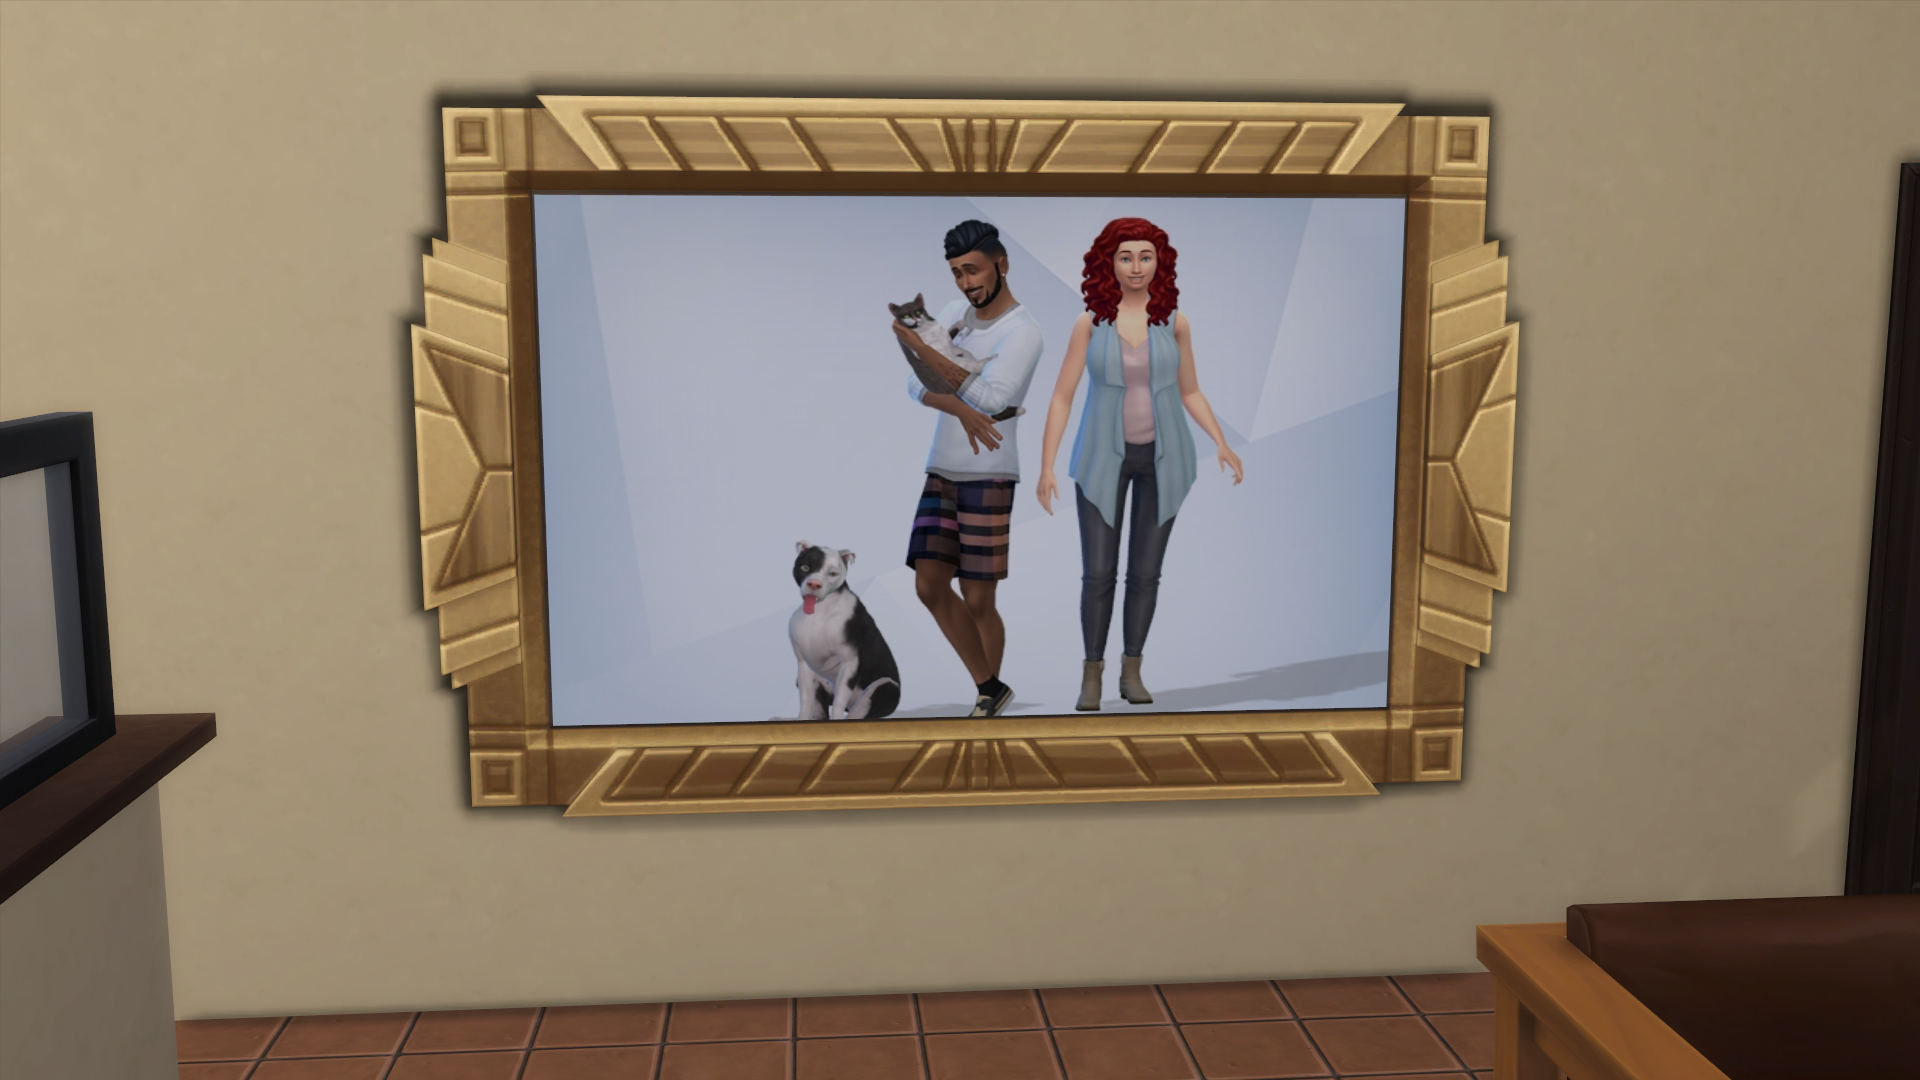 The Sims 4 in 2018: A Year in Review | SimsVIP